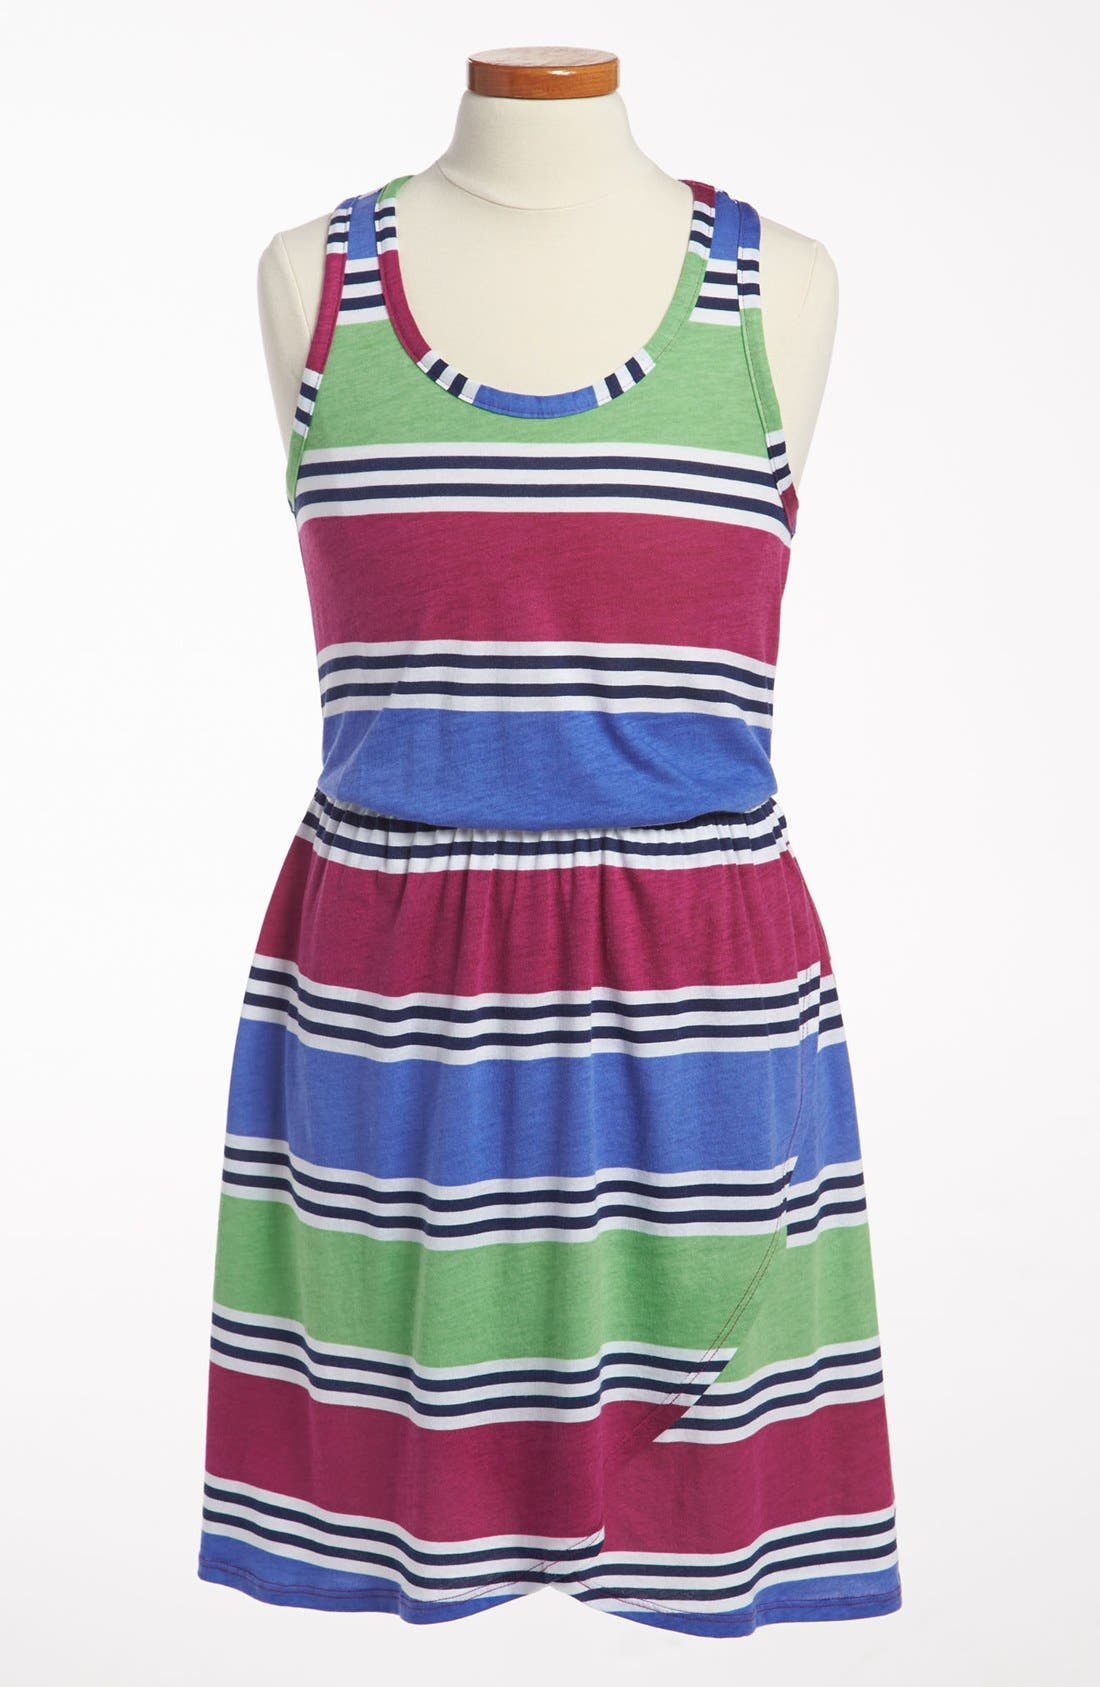 Main Image - Splendid 'Cabana Stripe' Dress (Big Girls)